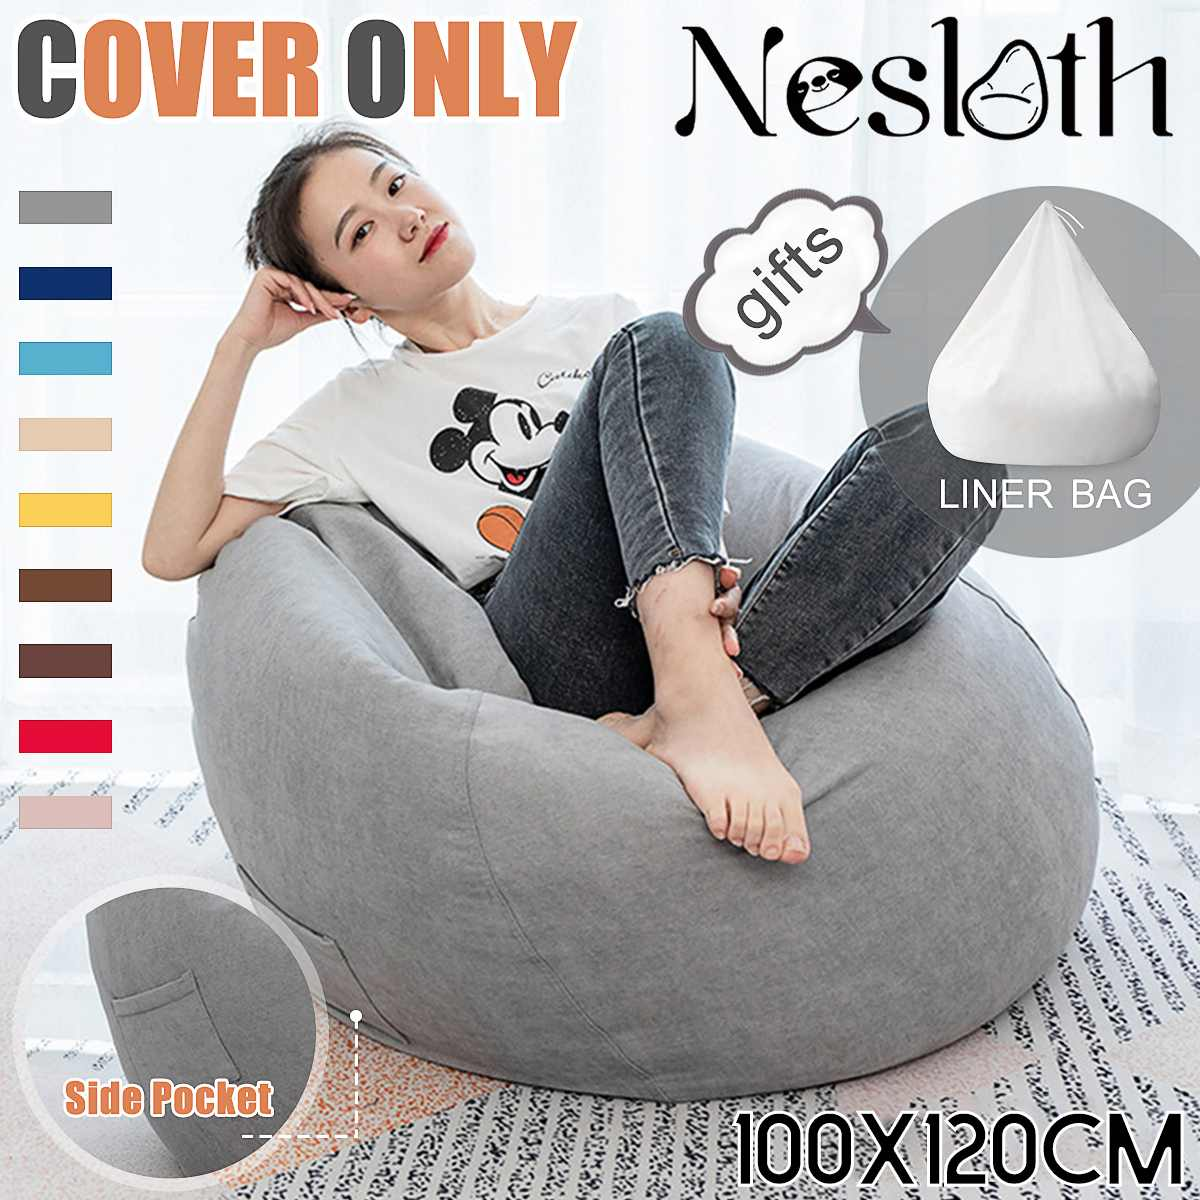 2Pcs Large Lazy BeanBag Sofas Cover+Inner Liner Without Filler Velvet Lounger Seat Bean Bag Pouf Puff Couch Tatami Living Room